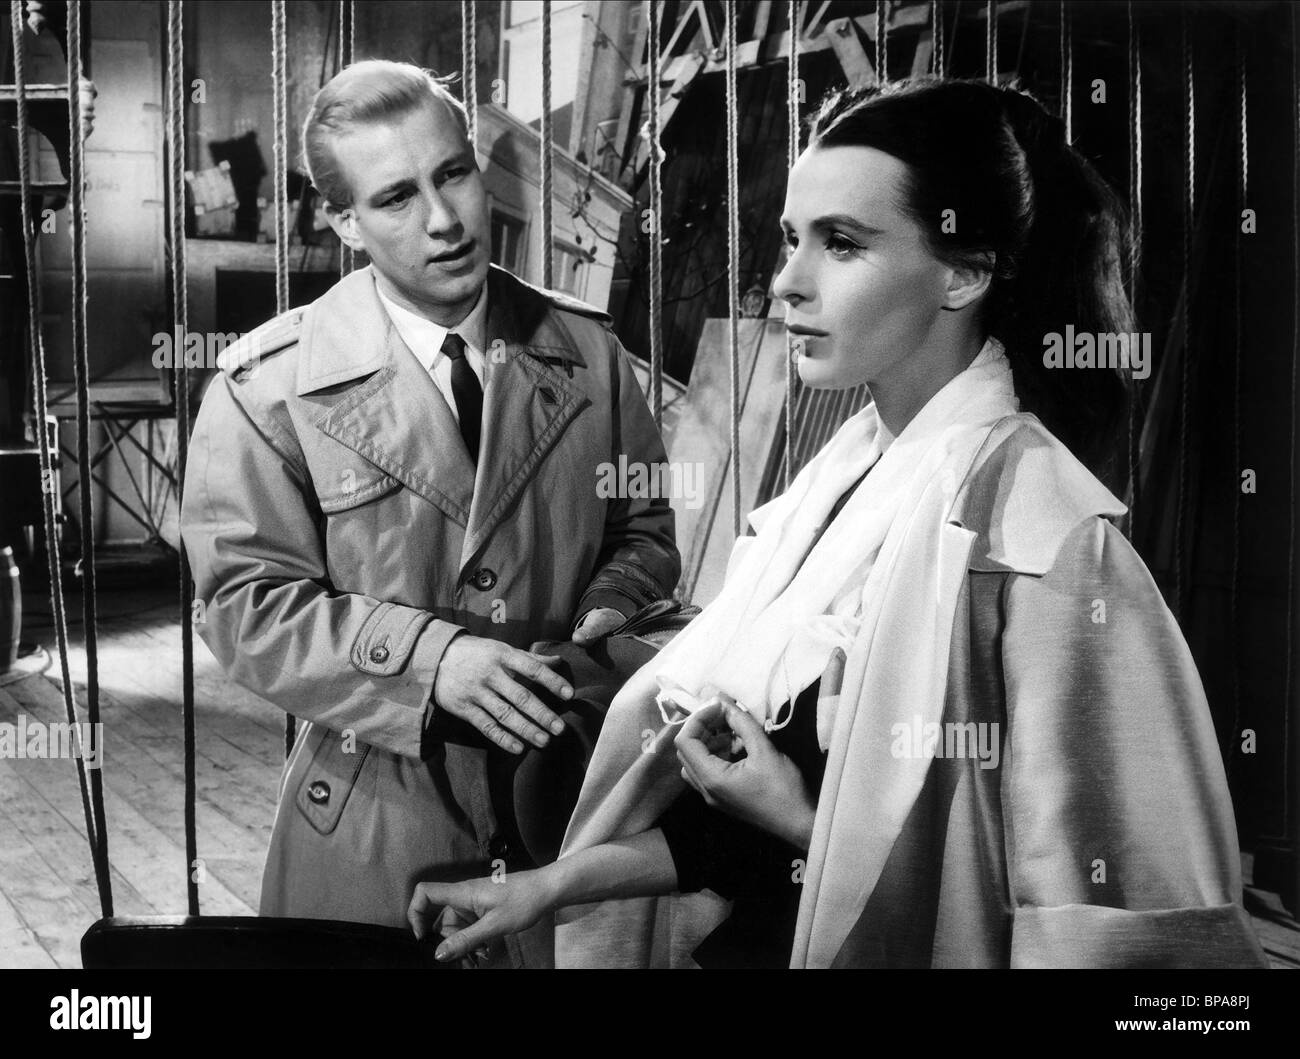 HANSJÖRG FELMY, CLAIRE BLOOM, THREE MOVES TO FREEDOM, 1960 - Stock Image